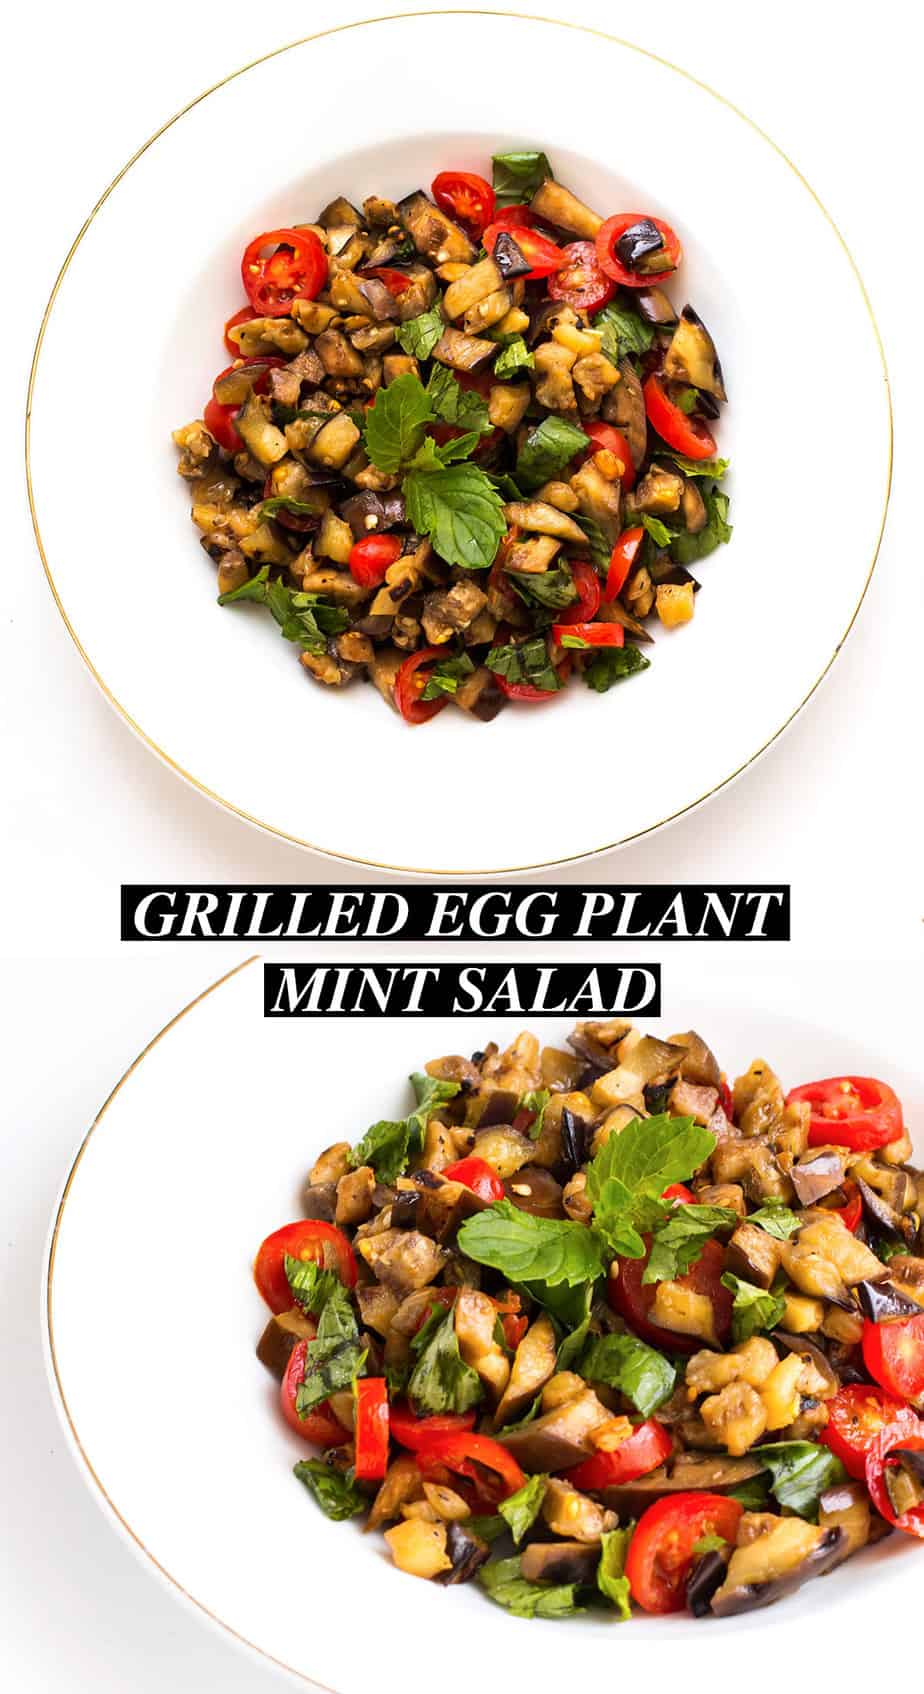 GRILLED-EGGPLANT-MINT-SALAD-RECIPE-PINTEREST